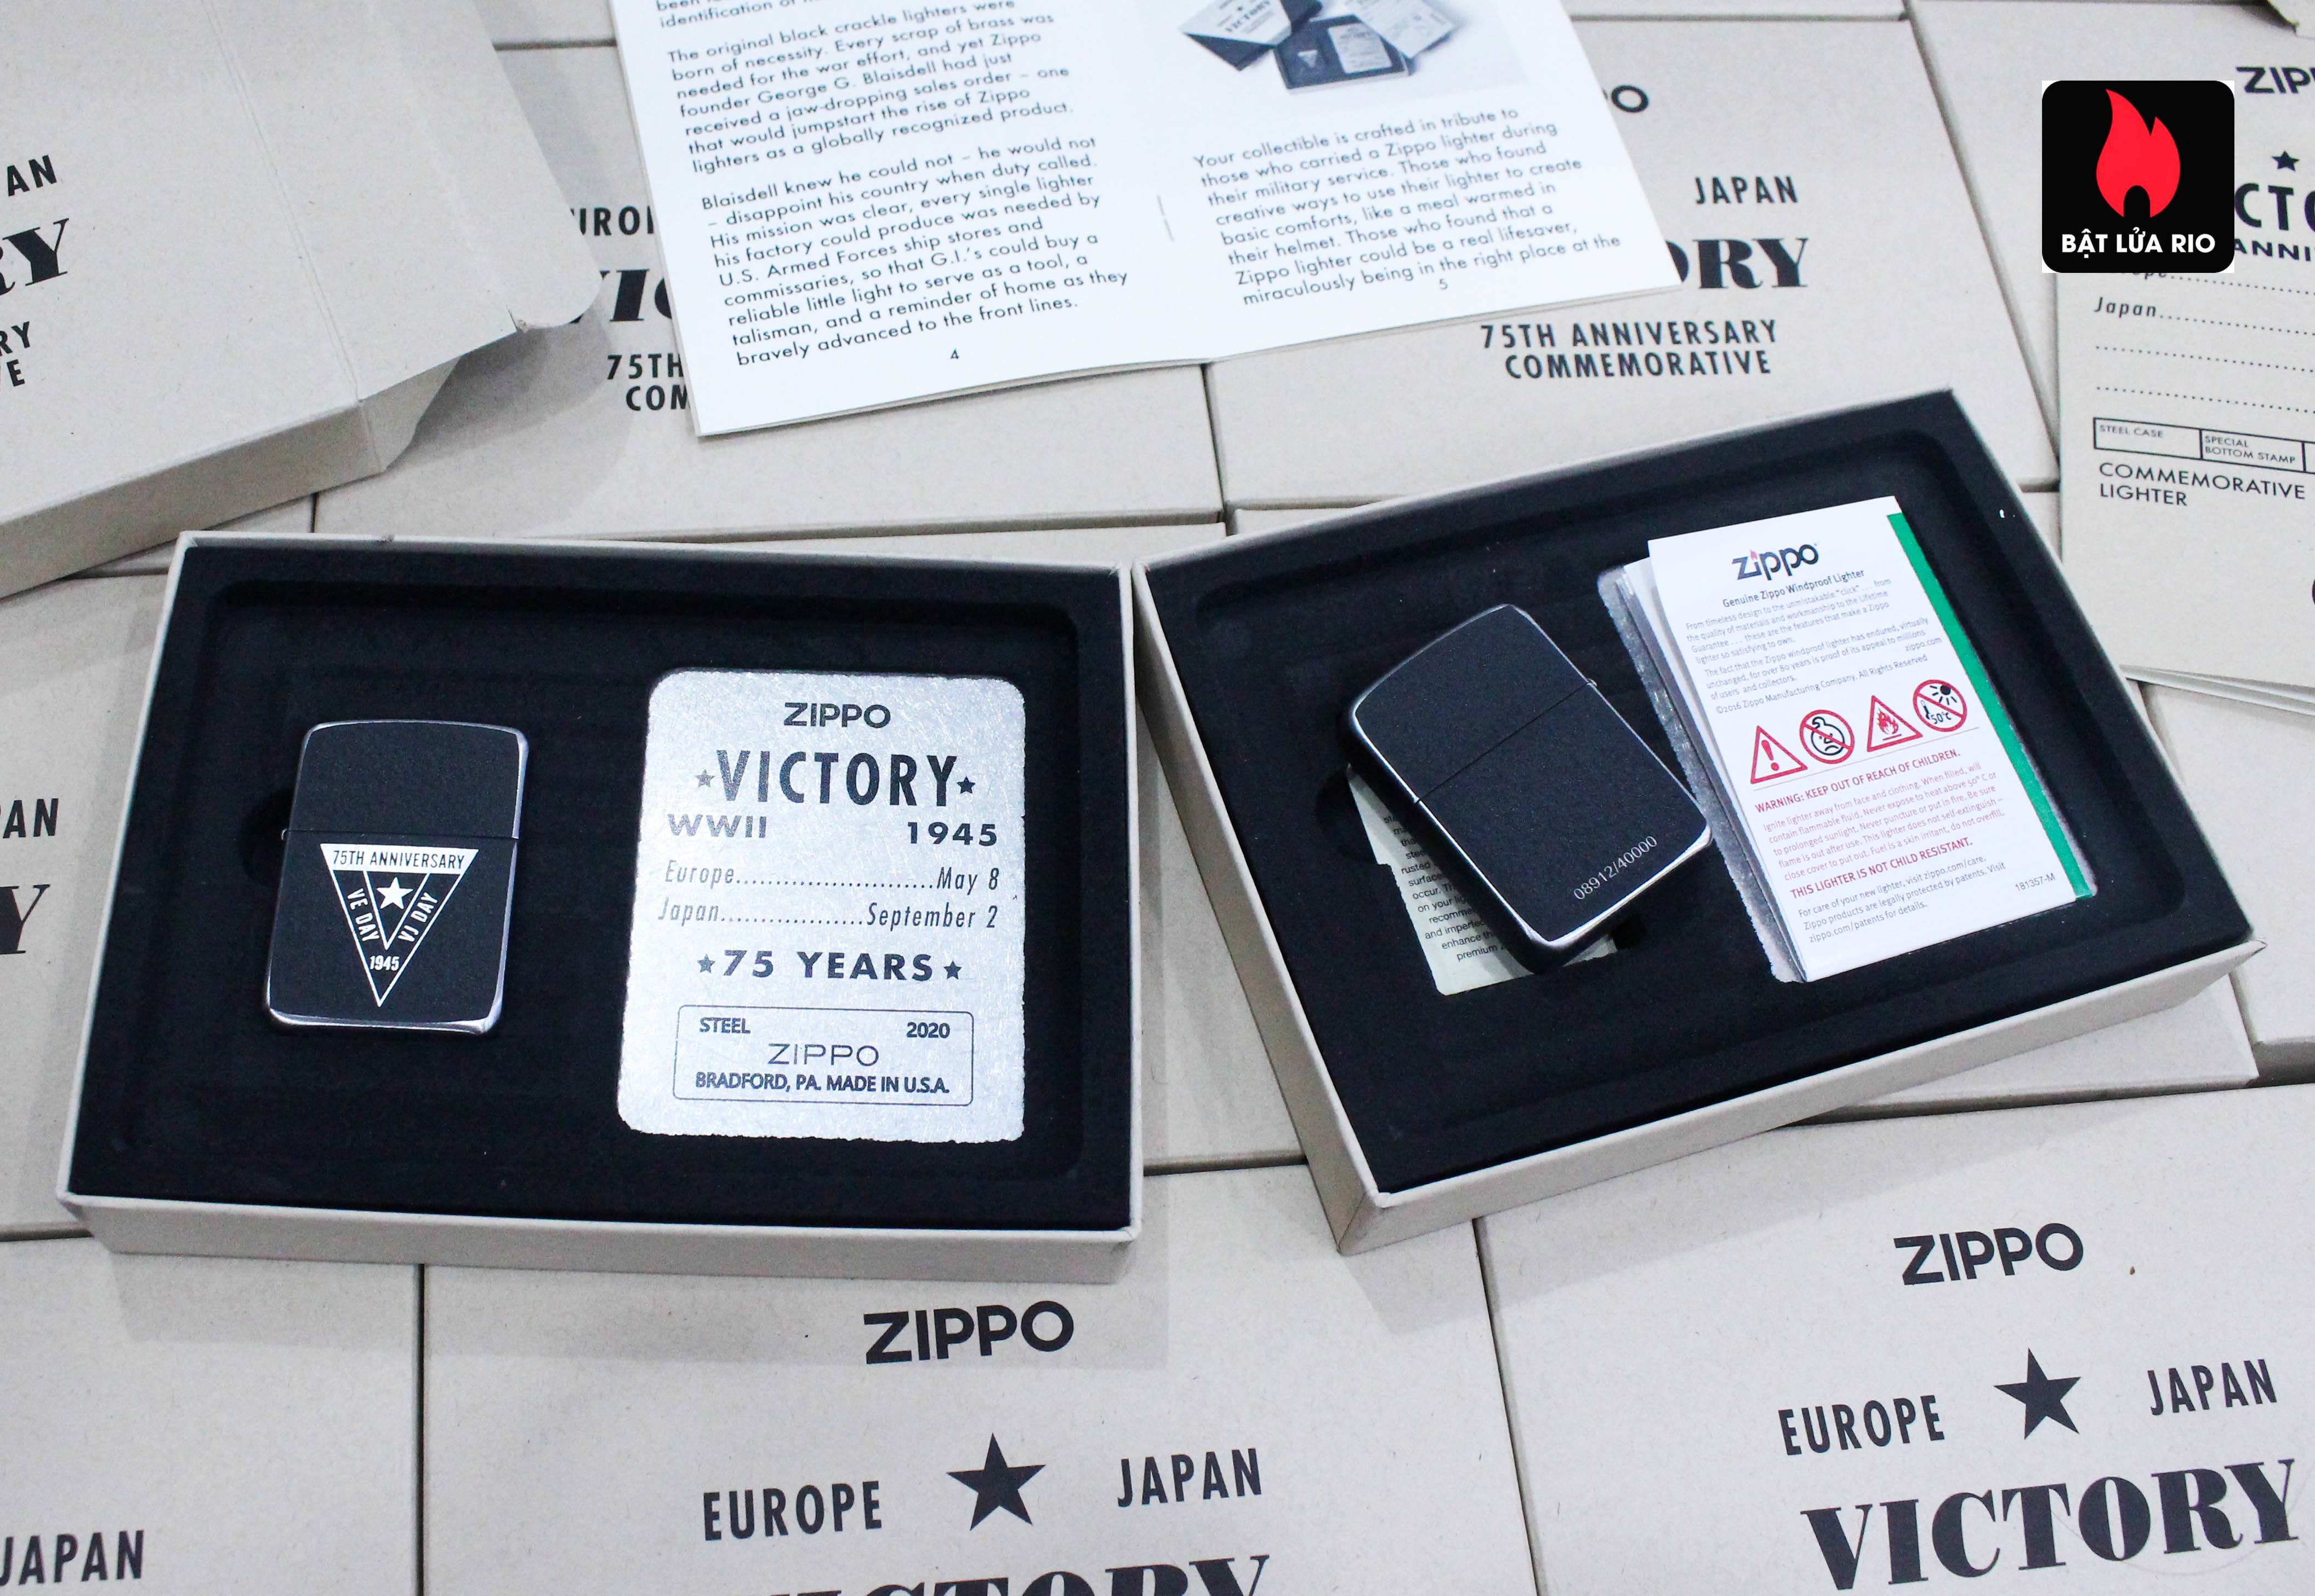 Zippo VE/VJ 75th Anniversary Collectible Steel Case - Zippo Victory in Europe & Japan Collectible Lighter - Zippo 49264 34